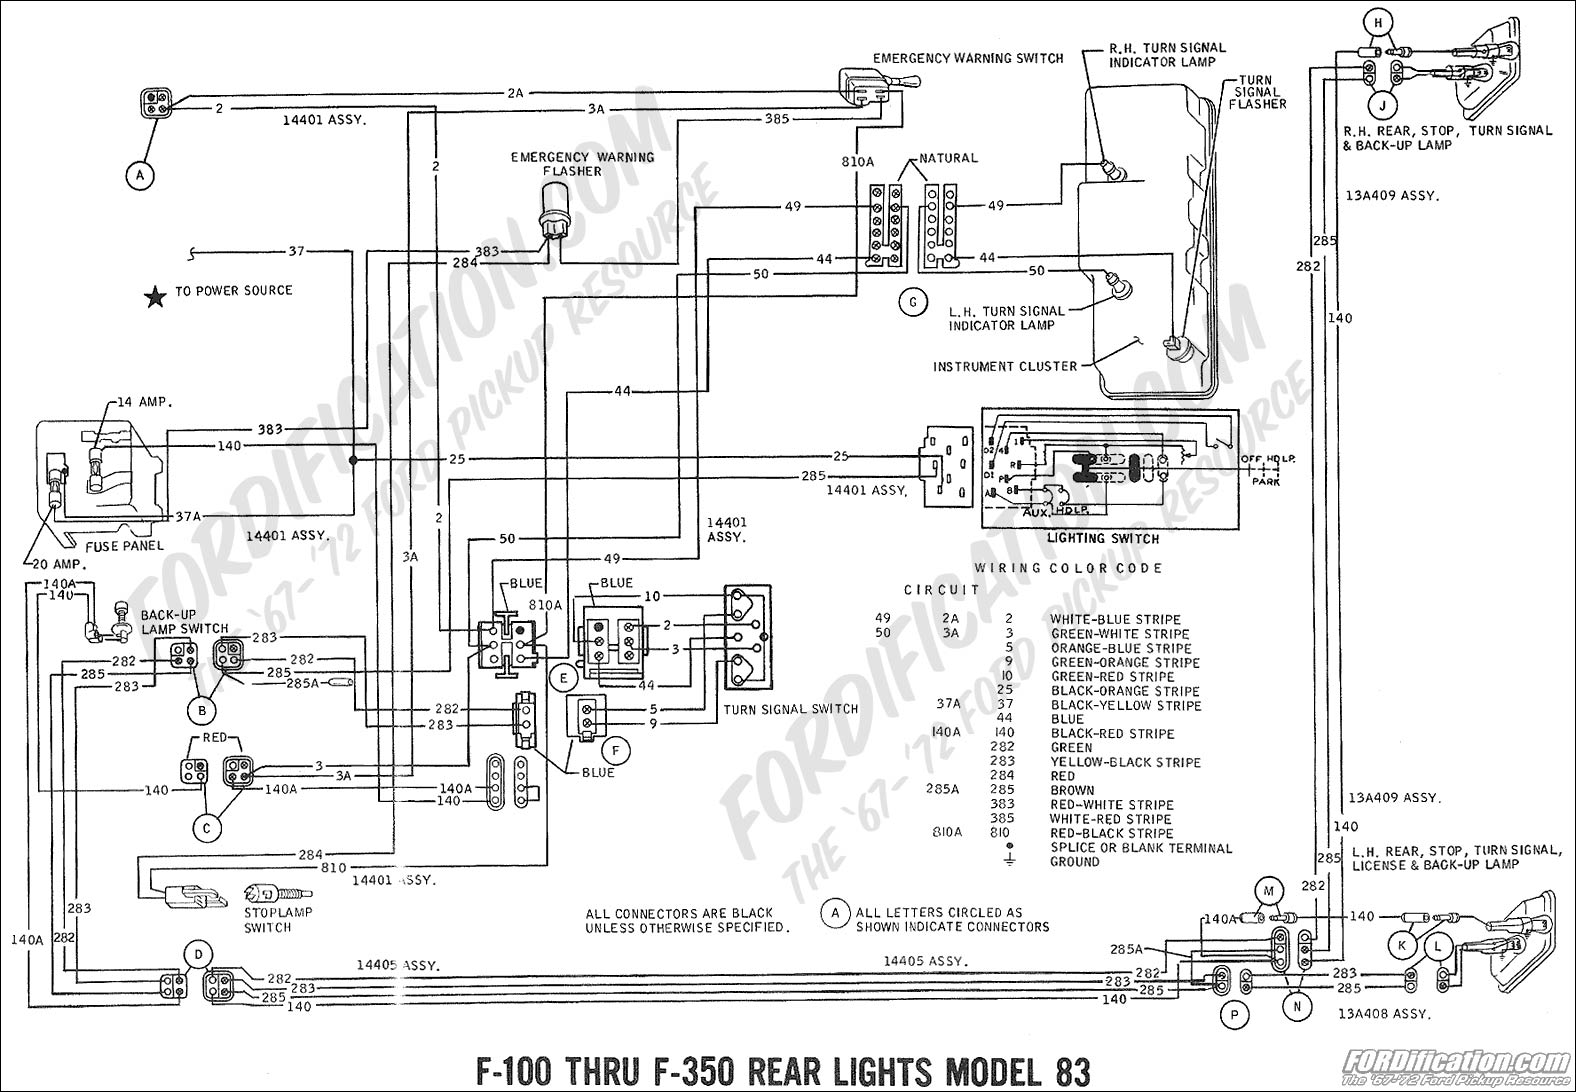 Malibu 2002 Turn Signal Relay Location Free Download Wiring Diagram